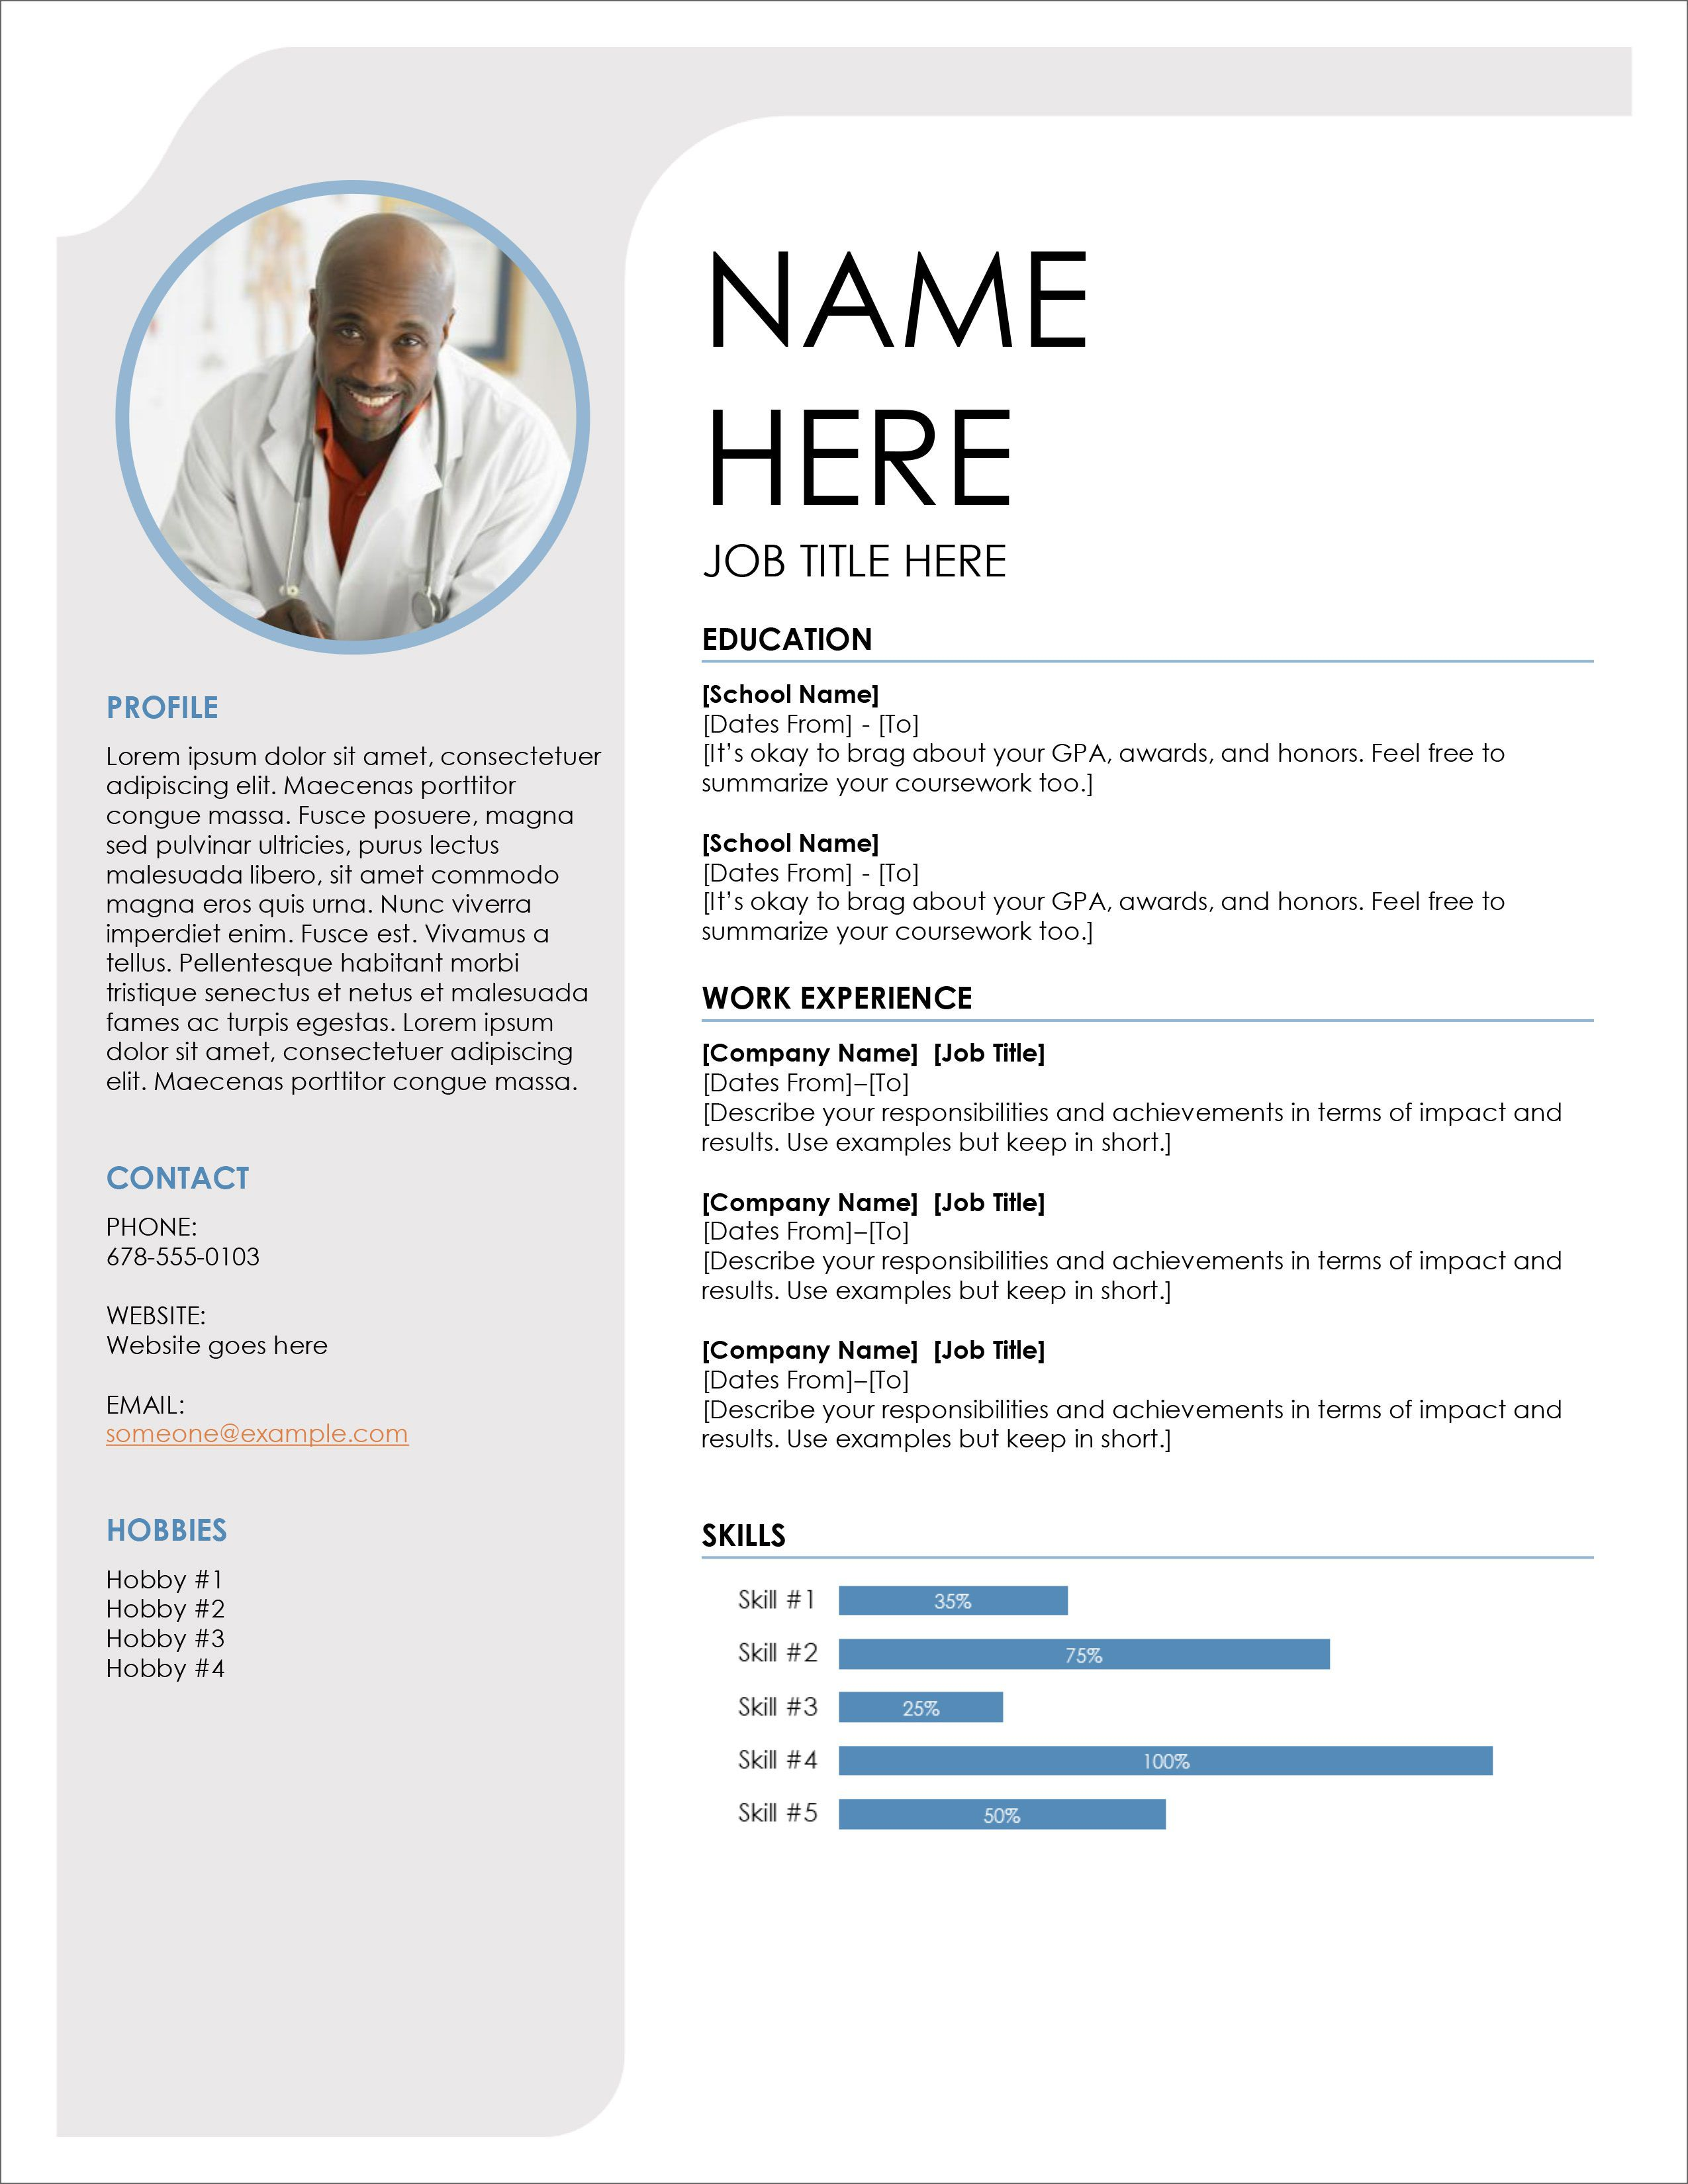 006 Fearsome Professional Resume Template Word Free Download Idea  Cv 2020 With PhotoFull